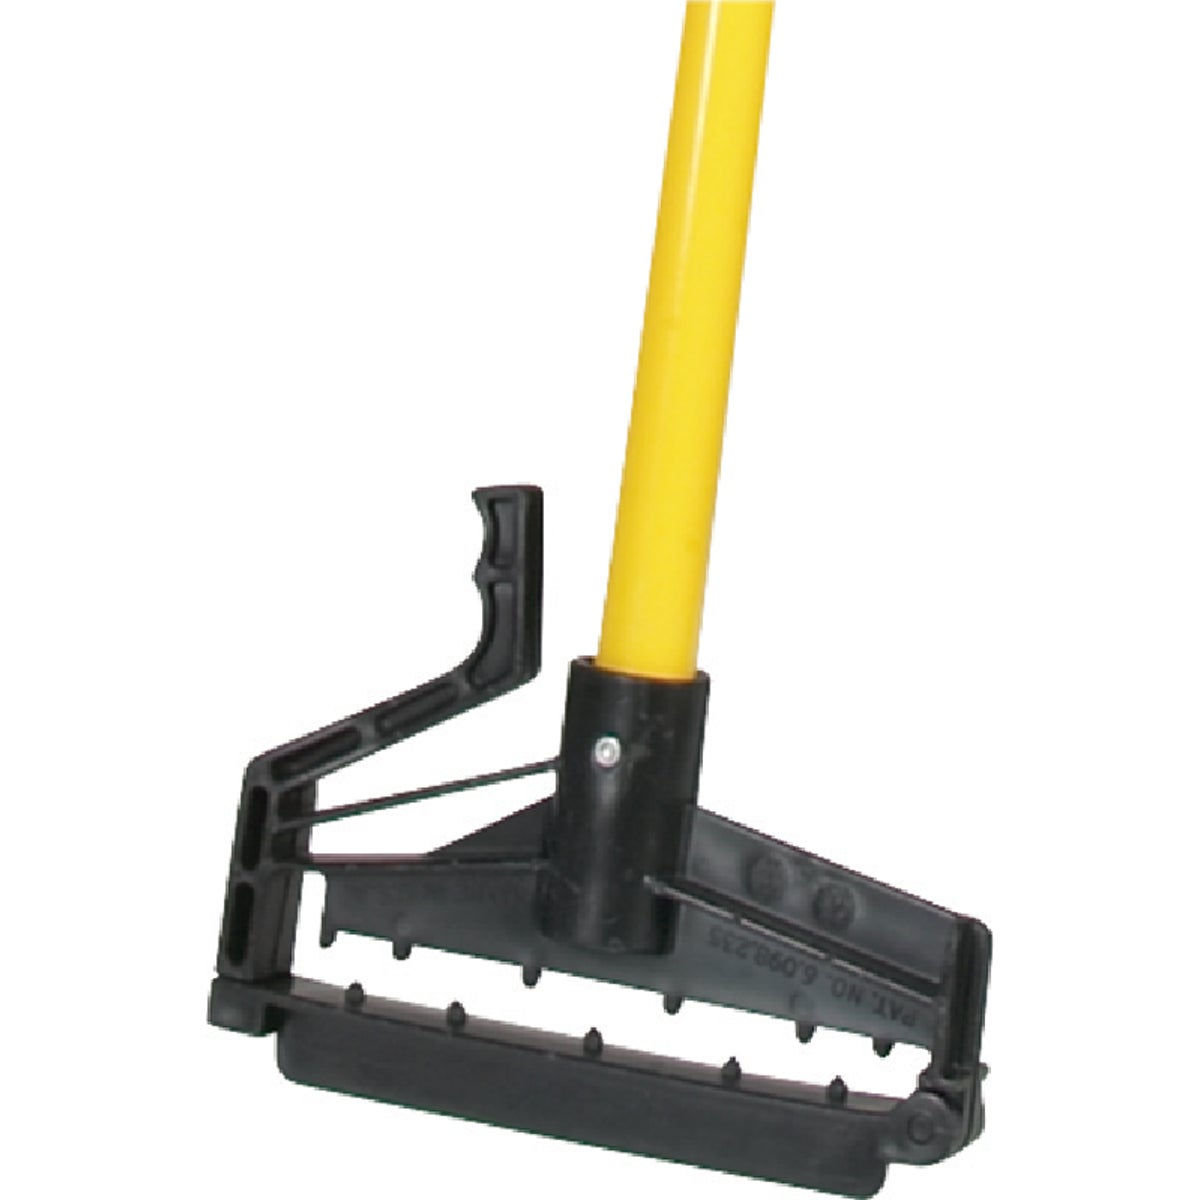 MOP STICK - 96516 by Nexstep Commercial